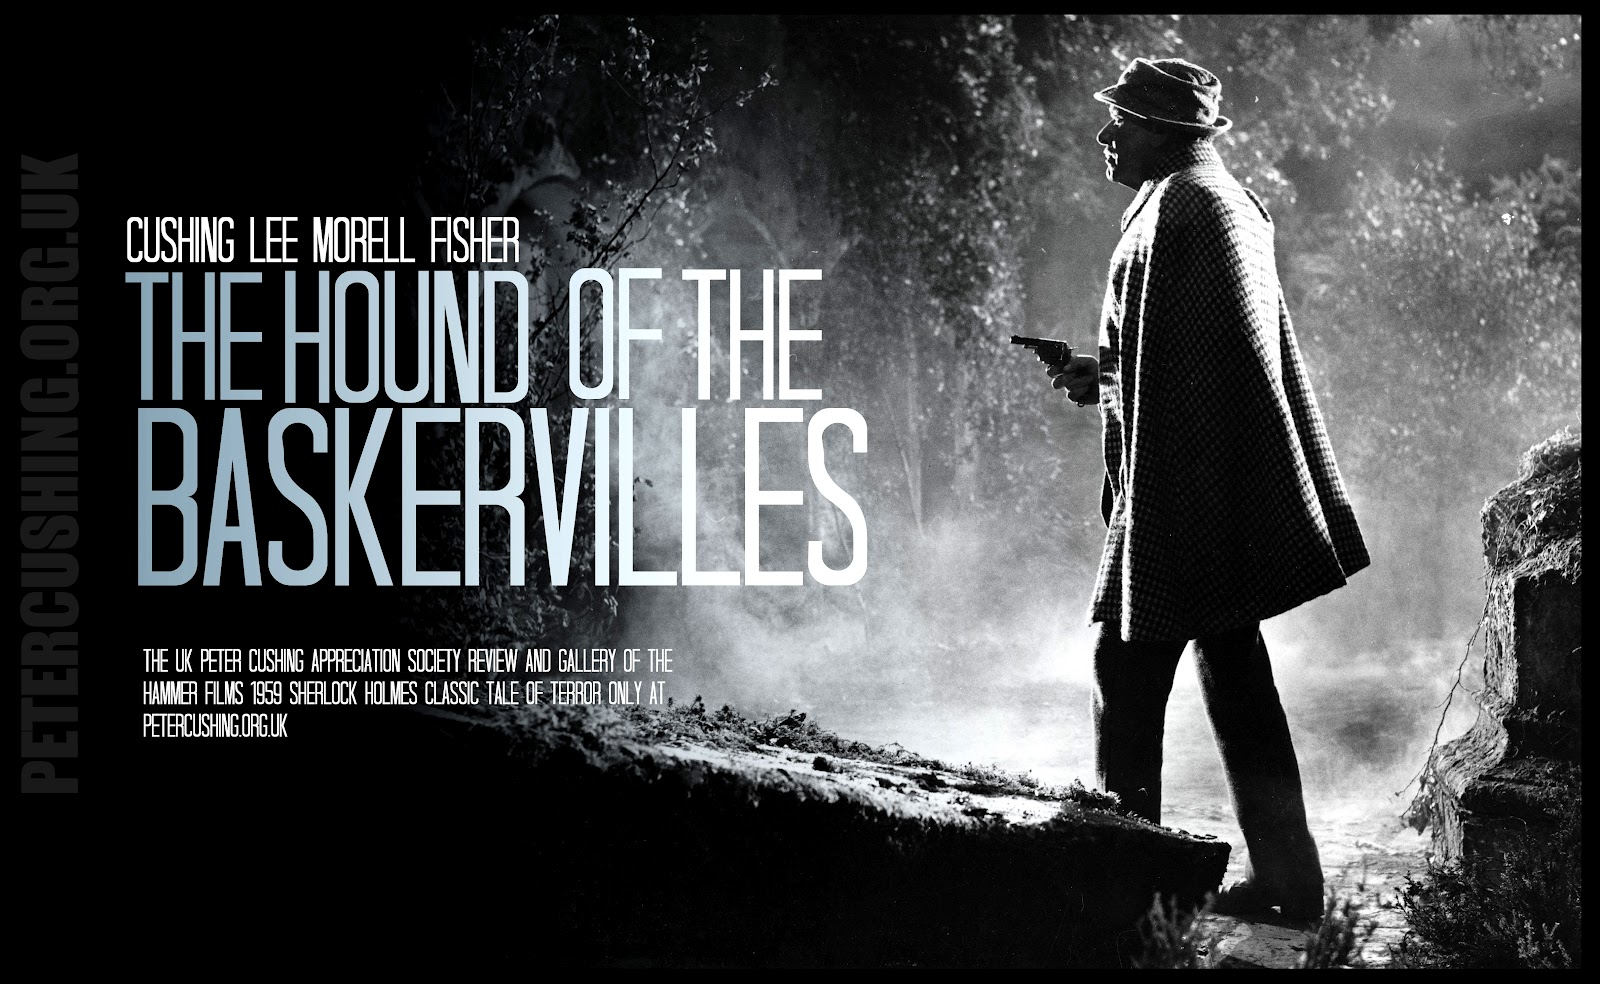 'The Hound of the Baskervilles' by Arthur Conan Doyle